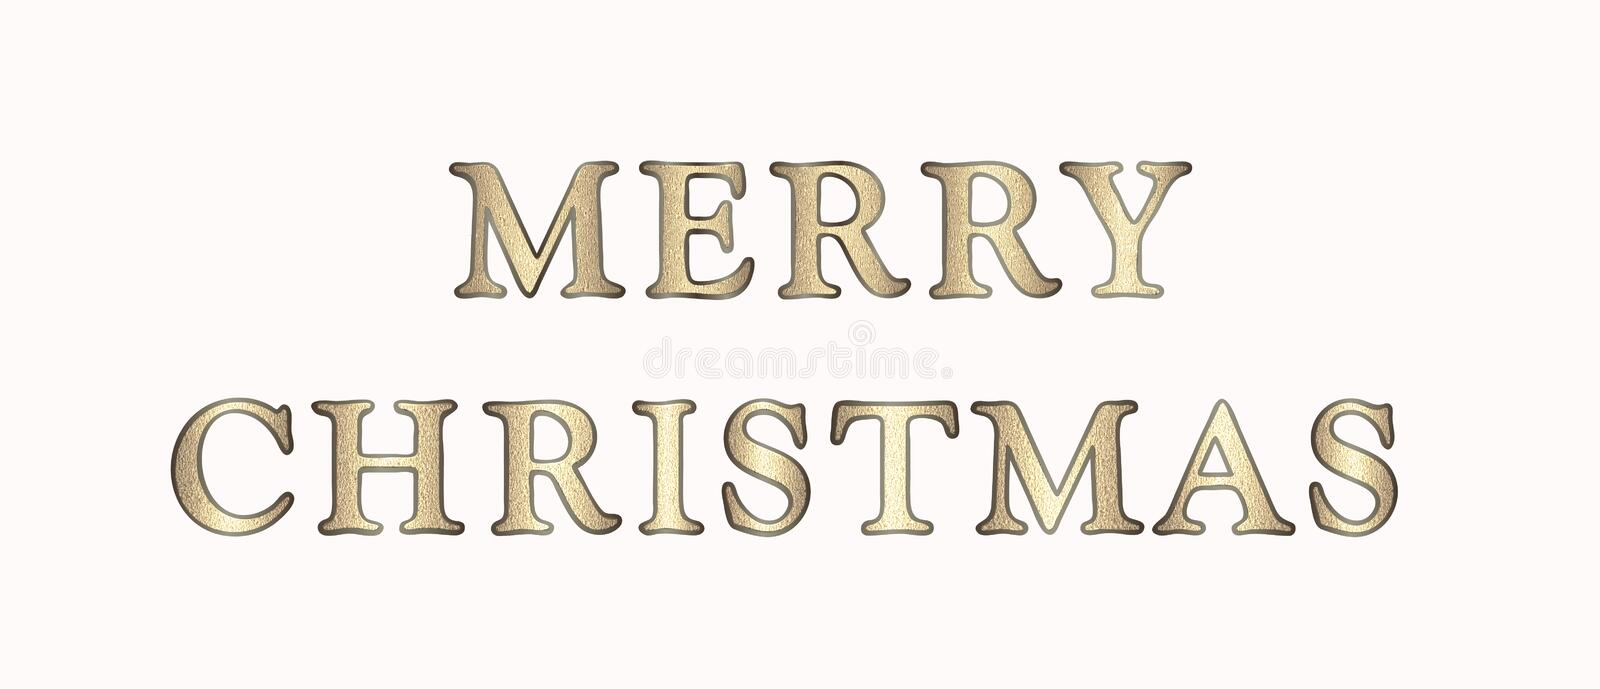 Elegant illustration Merry Christmas in golden-brown tones with glitter text, isolated on white. stock images